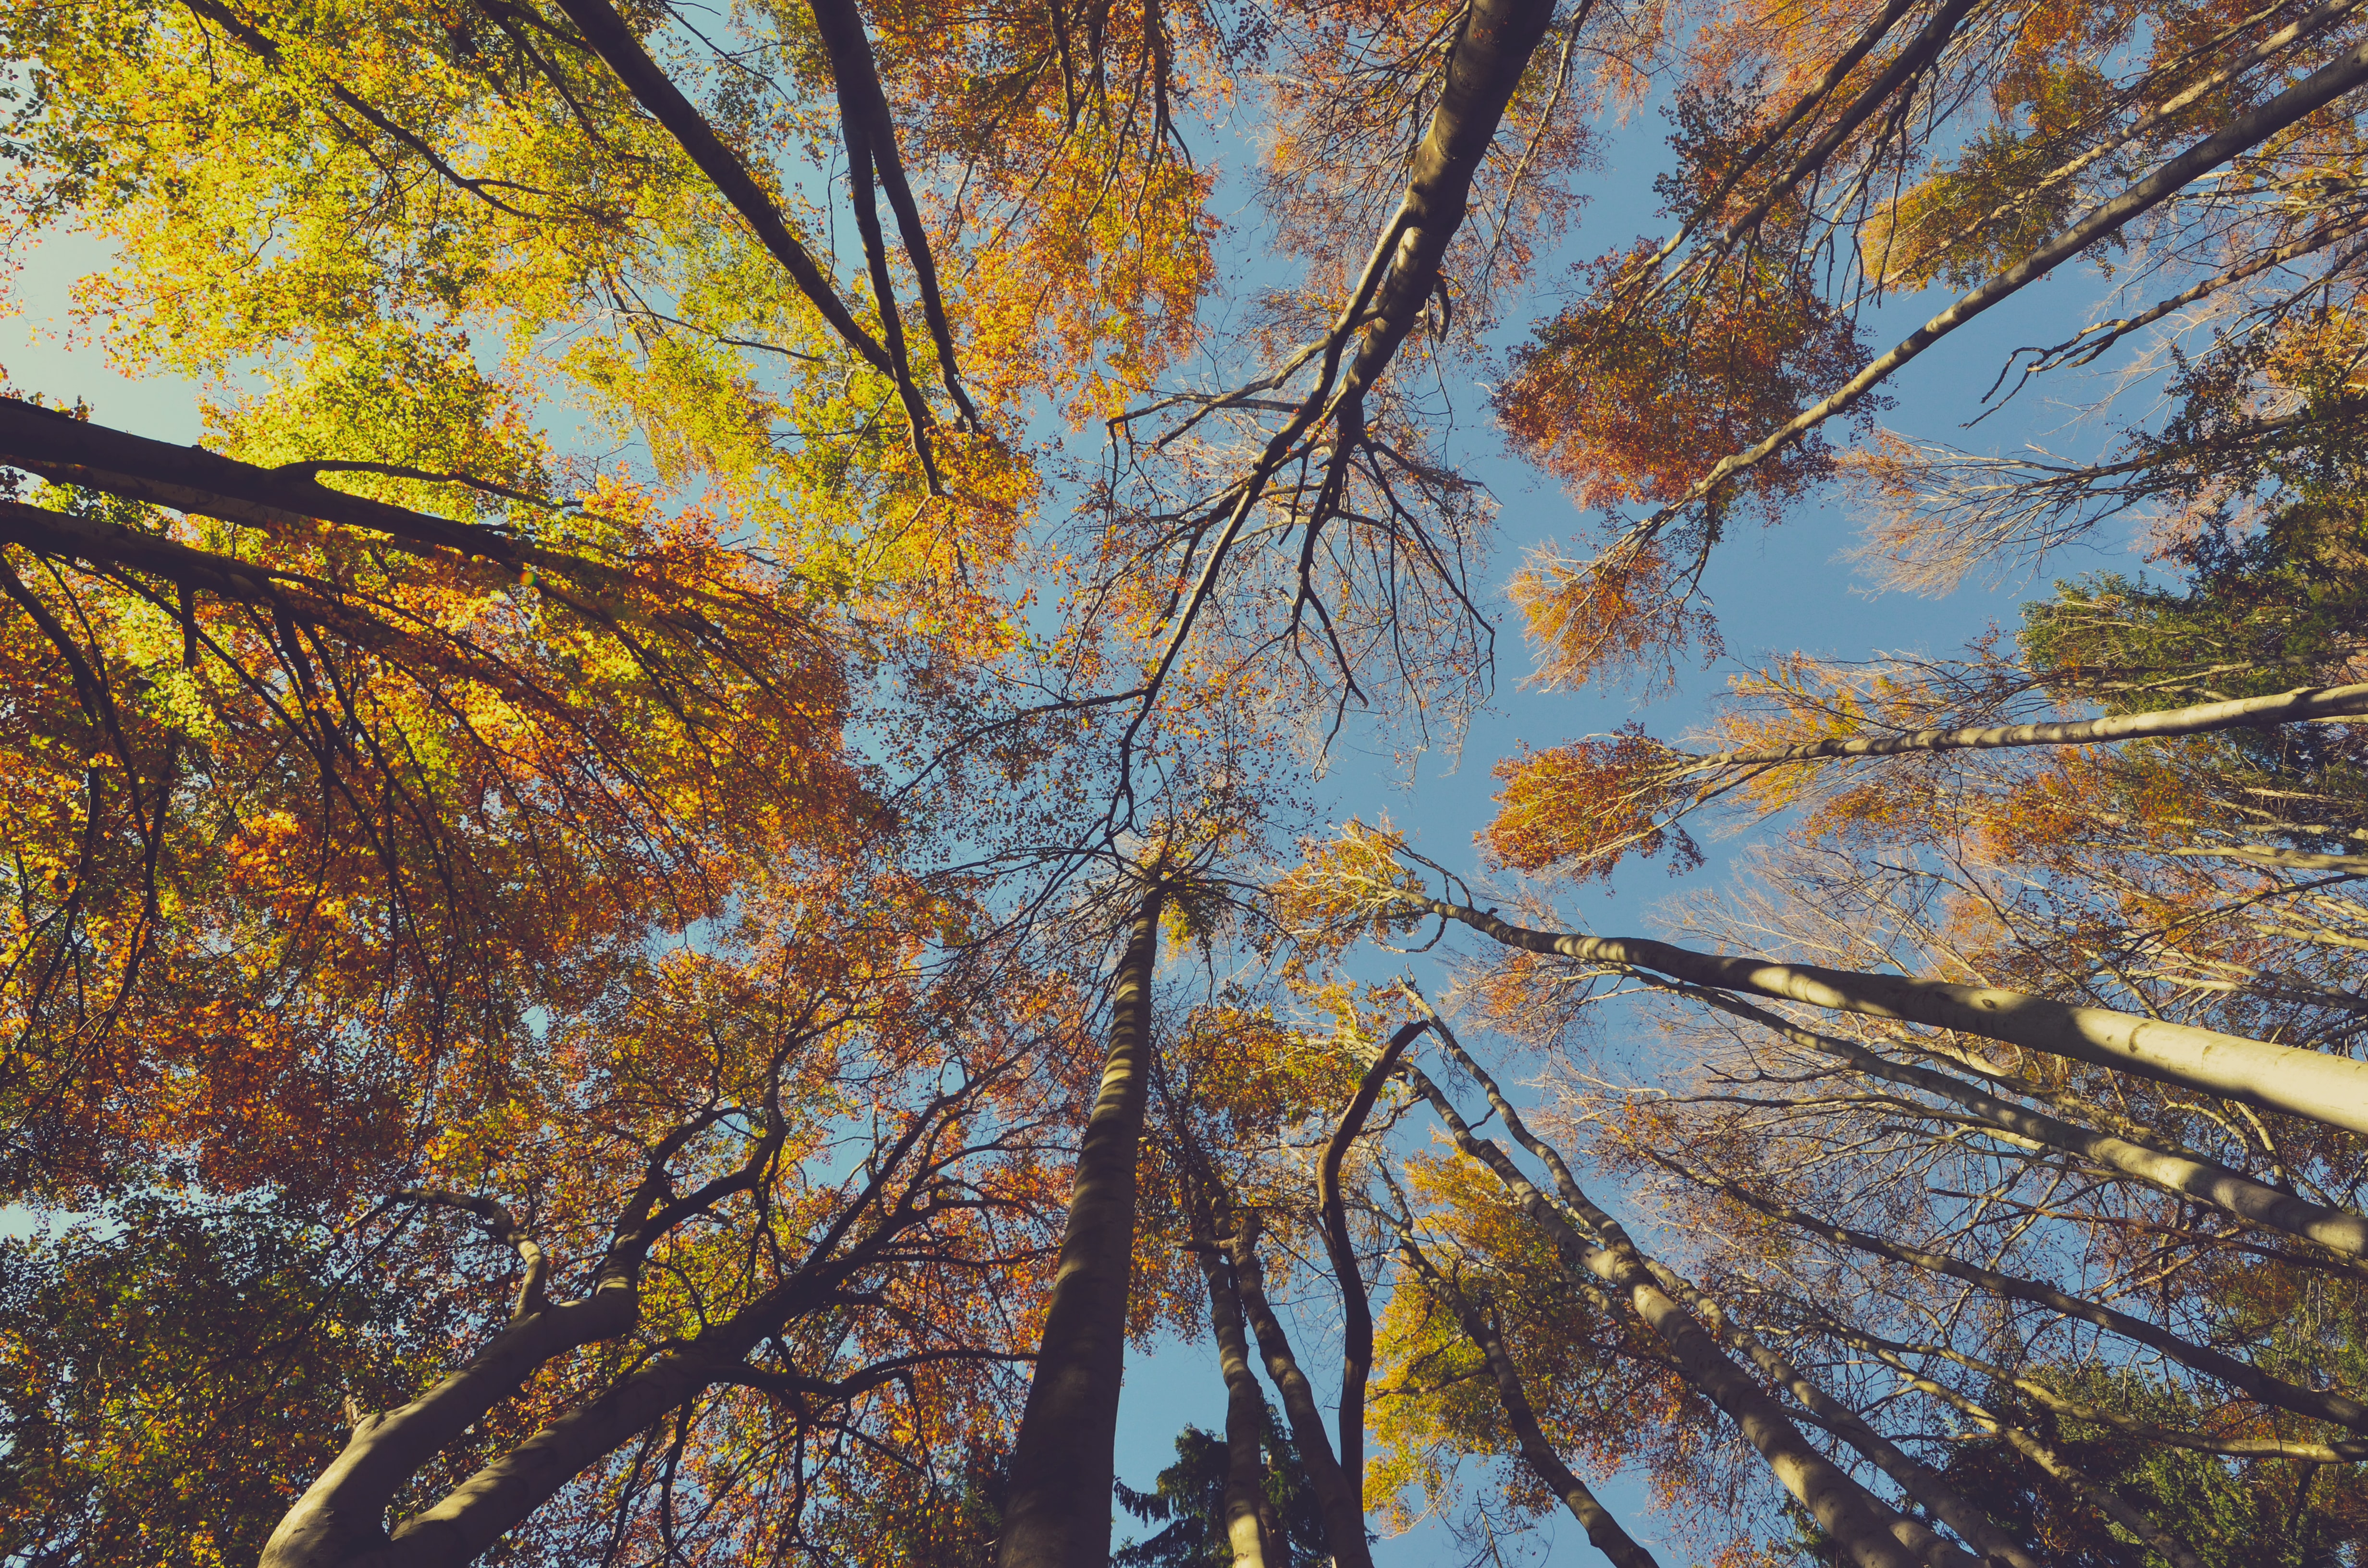 A low-angle shot of the yellow and orange canopy of tall autumn trees